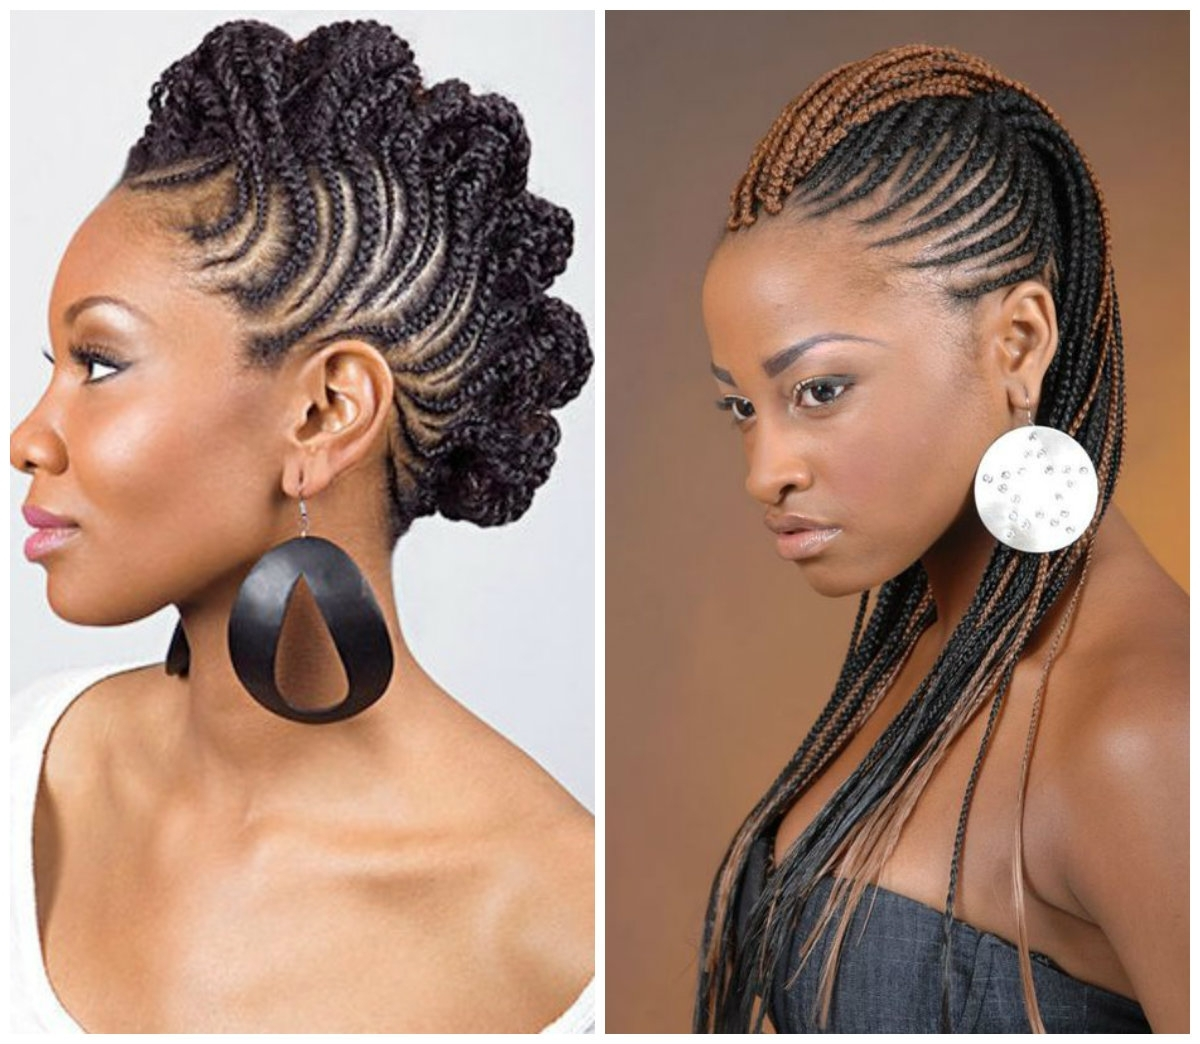 Hot African American Stone Age Inspired Braided Hairstyle Ideas Inside Scalp Braids Updo Hairstyles (View 10 of 15)